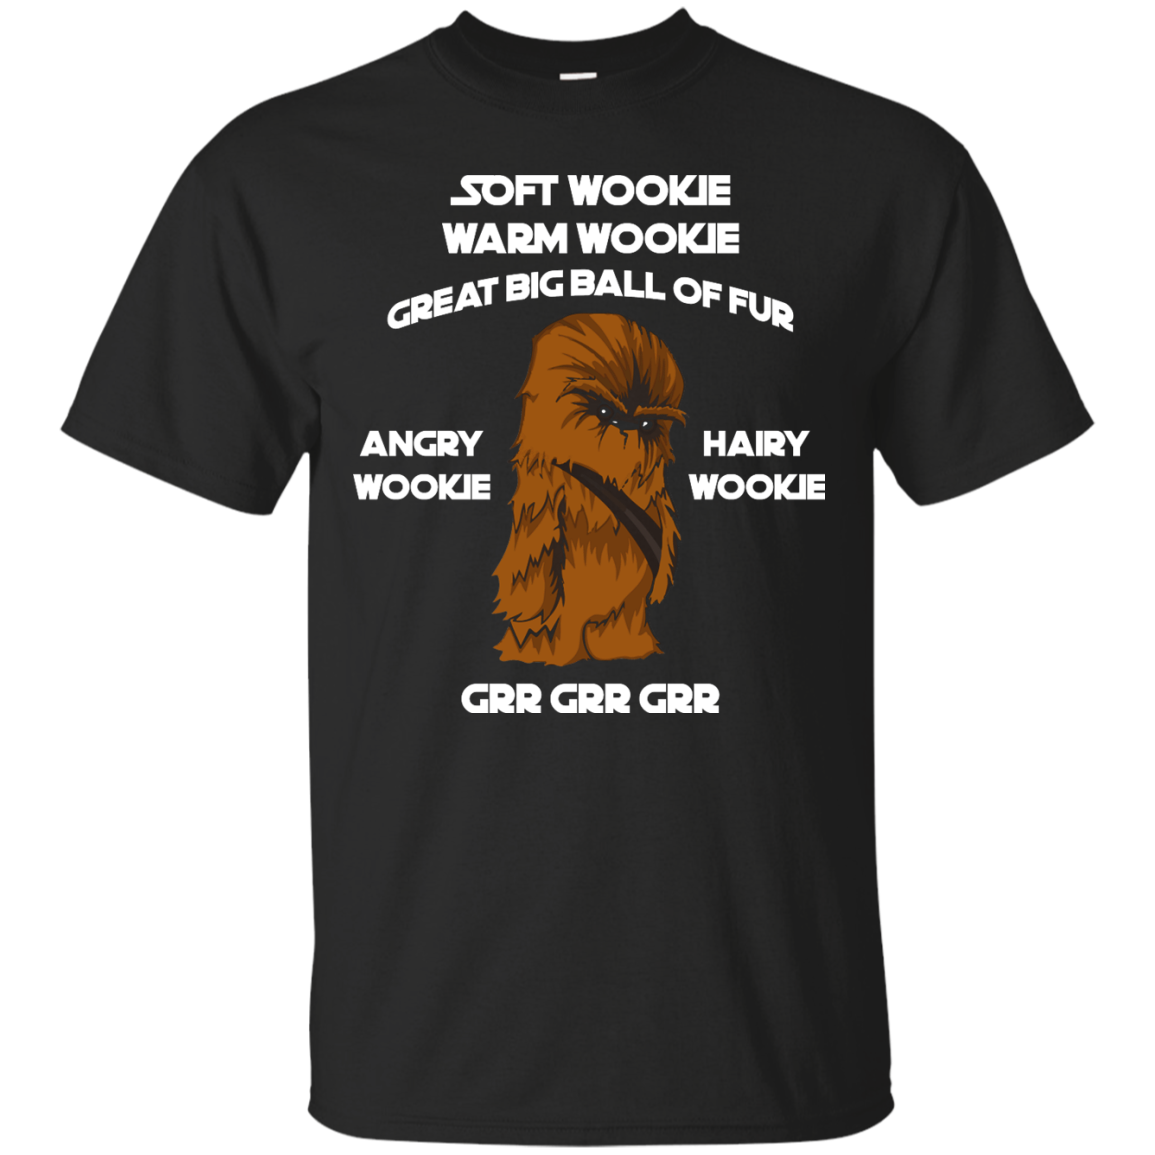 a15ce4fd Soft Wookie Warm Wookie Great big ball of fur unisex t shirt,tank,hoodie